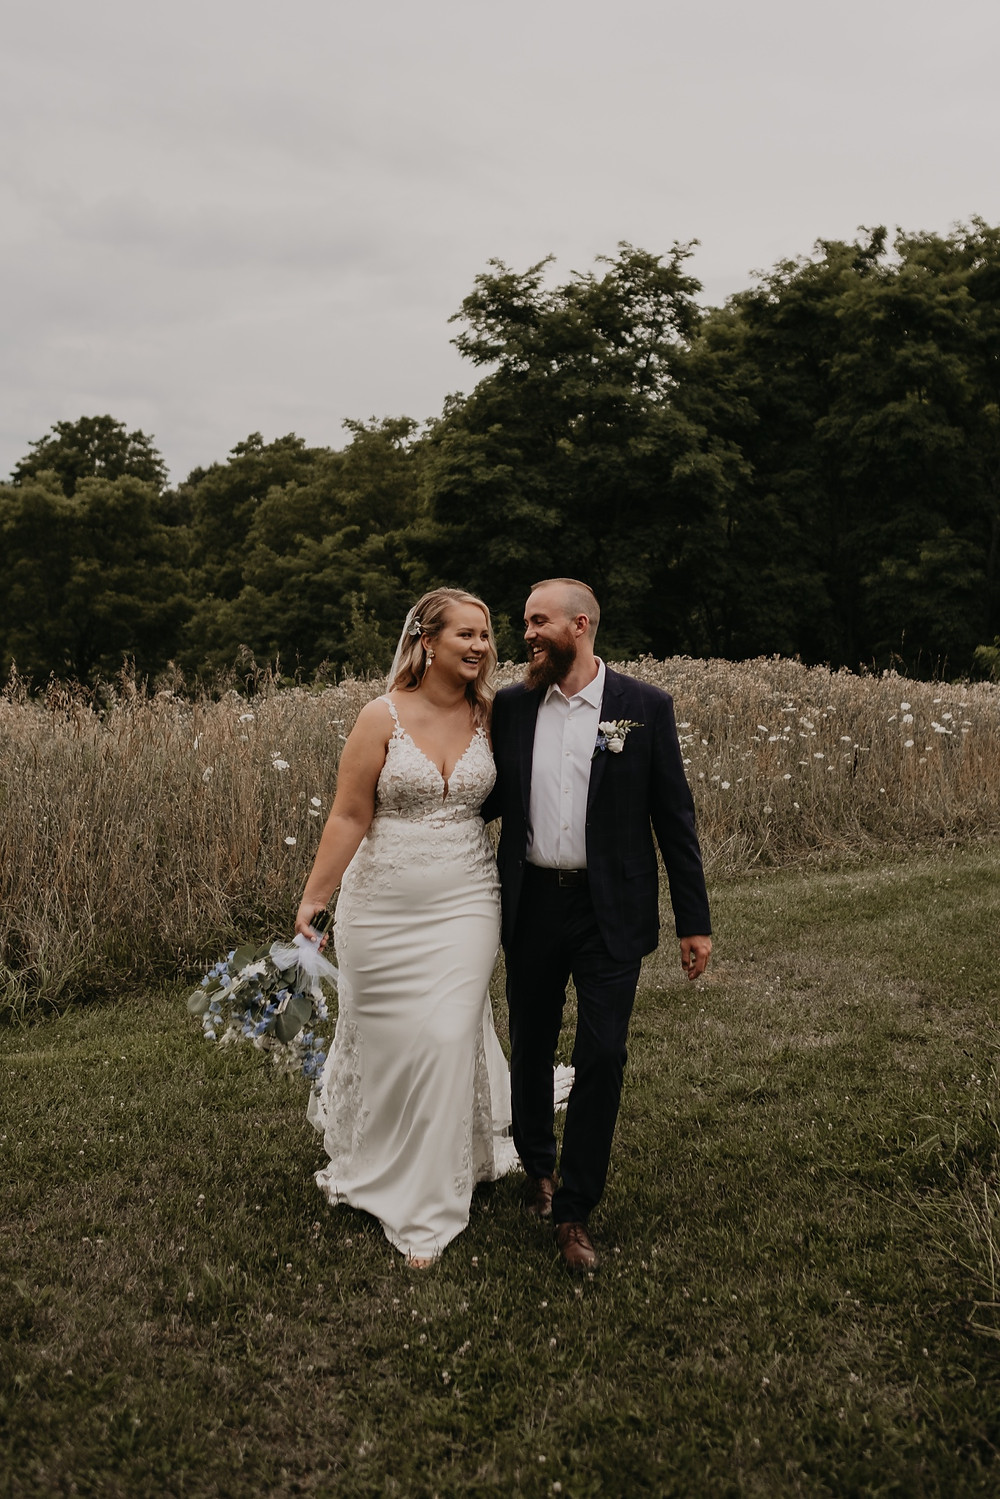 Couple walking through field after Michigan summer wedding. Photographed by Nicole Leanne Photography